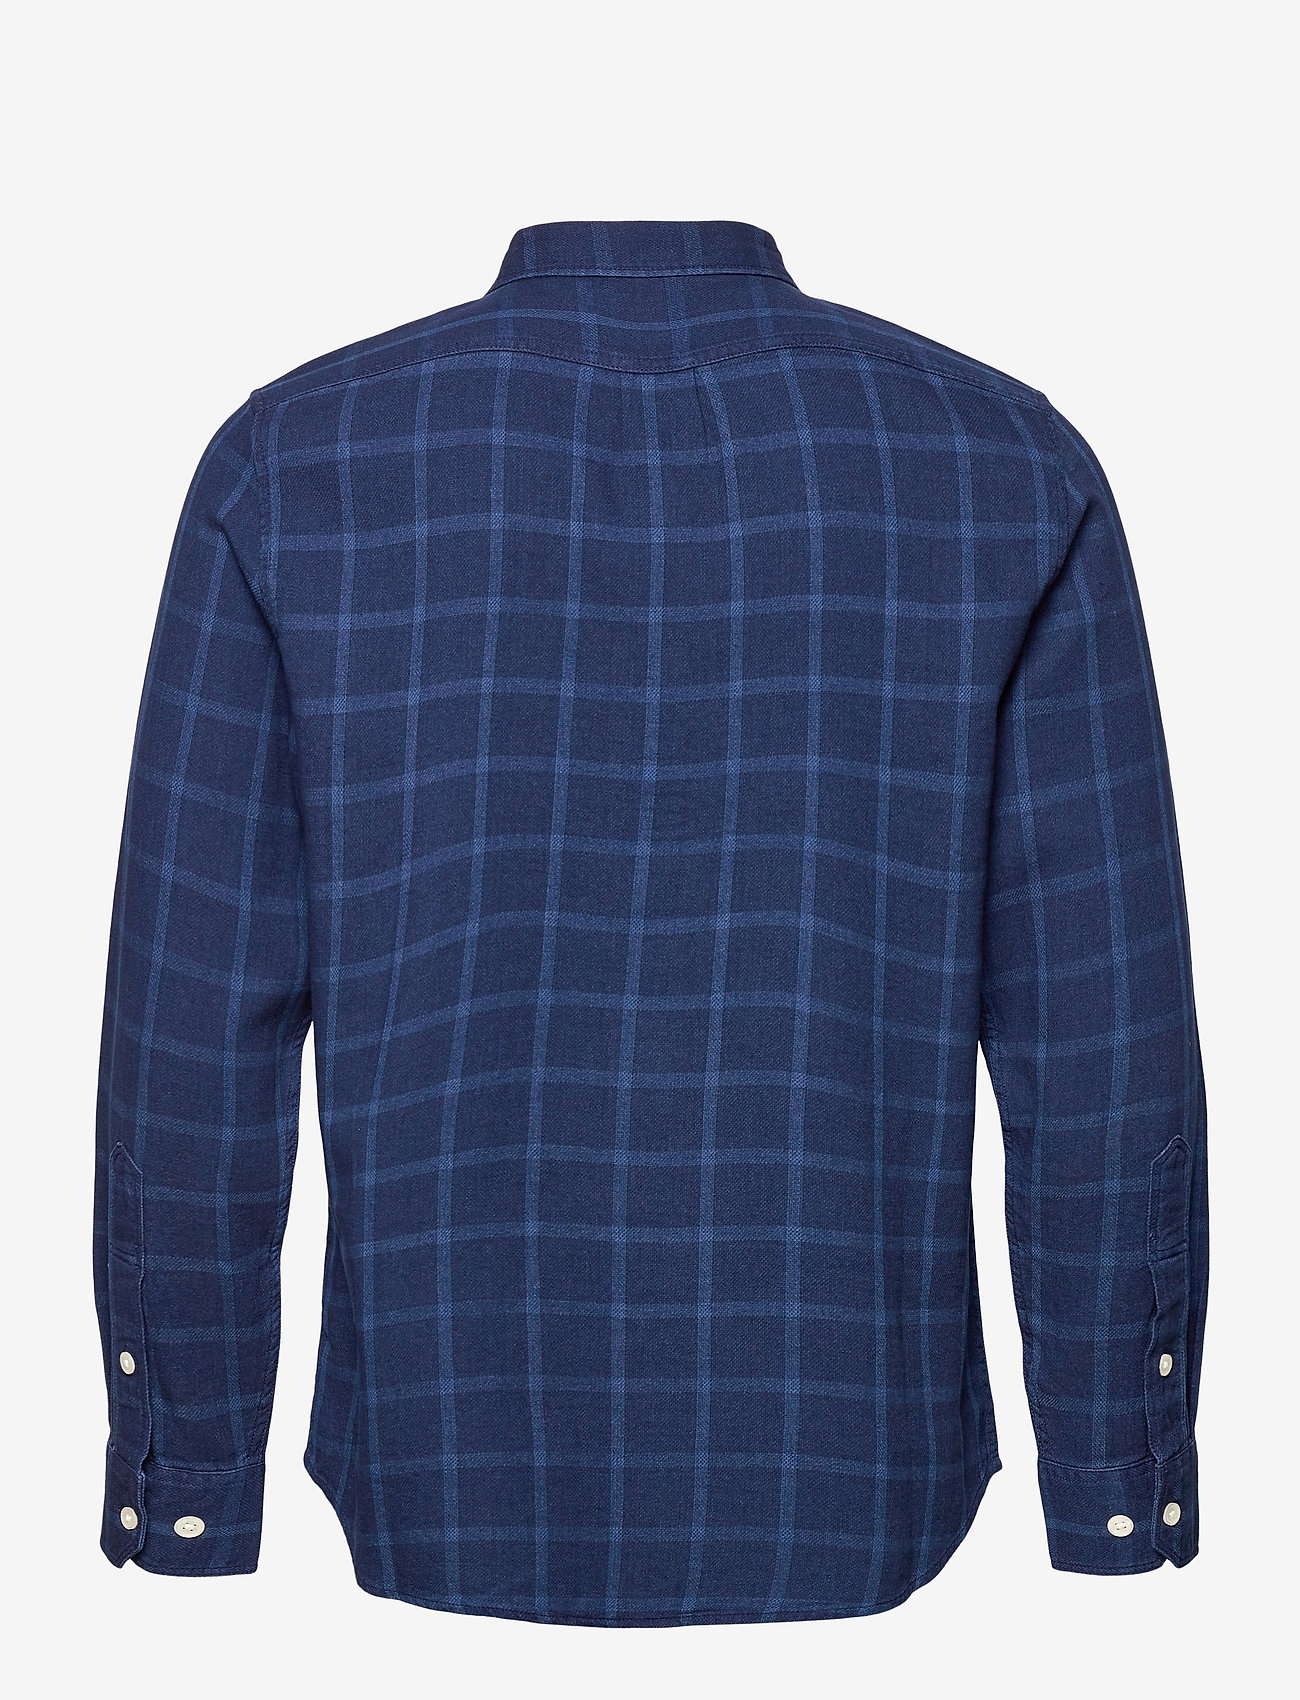 Lee Jeans - LEE ONE POCKET SHIRT - checkered shirts - indigo - 1